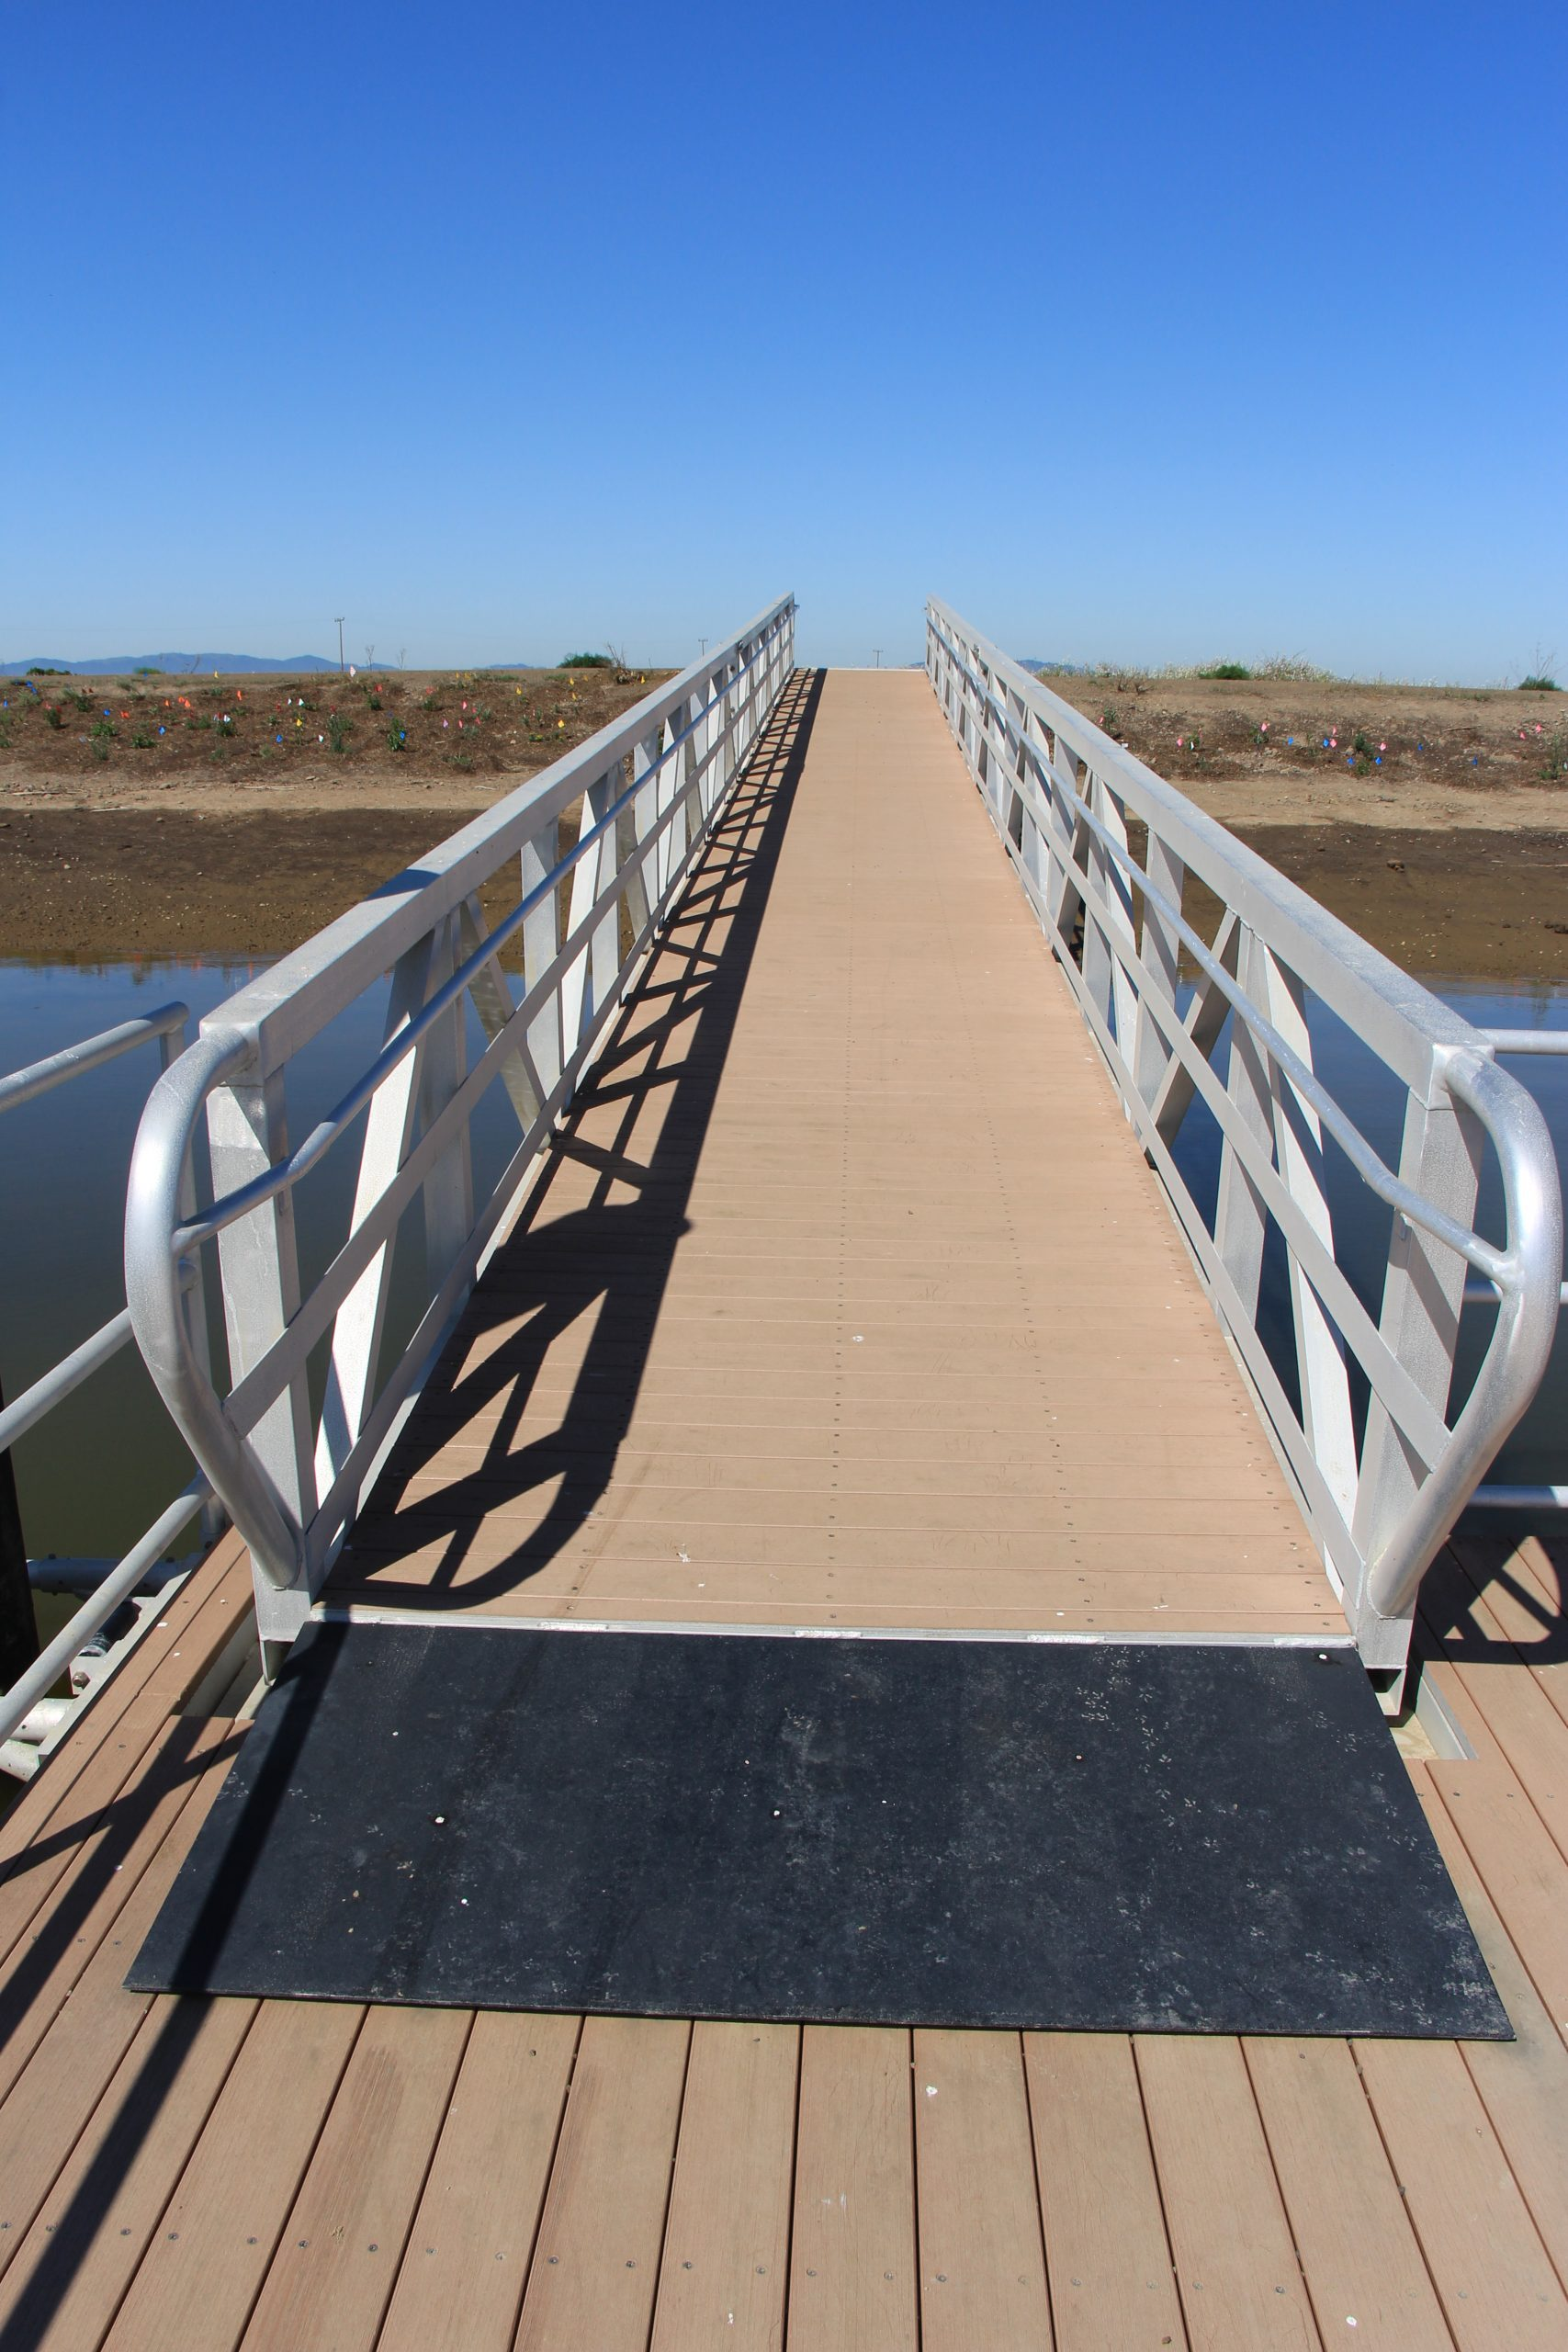 ramp from pier with metal railings on both sides